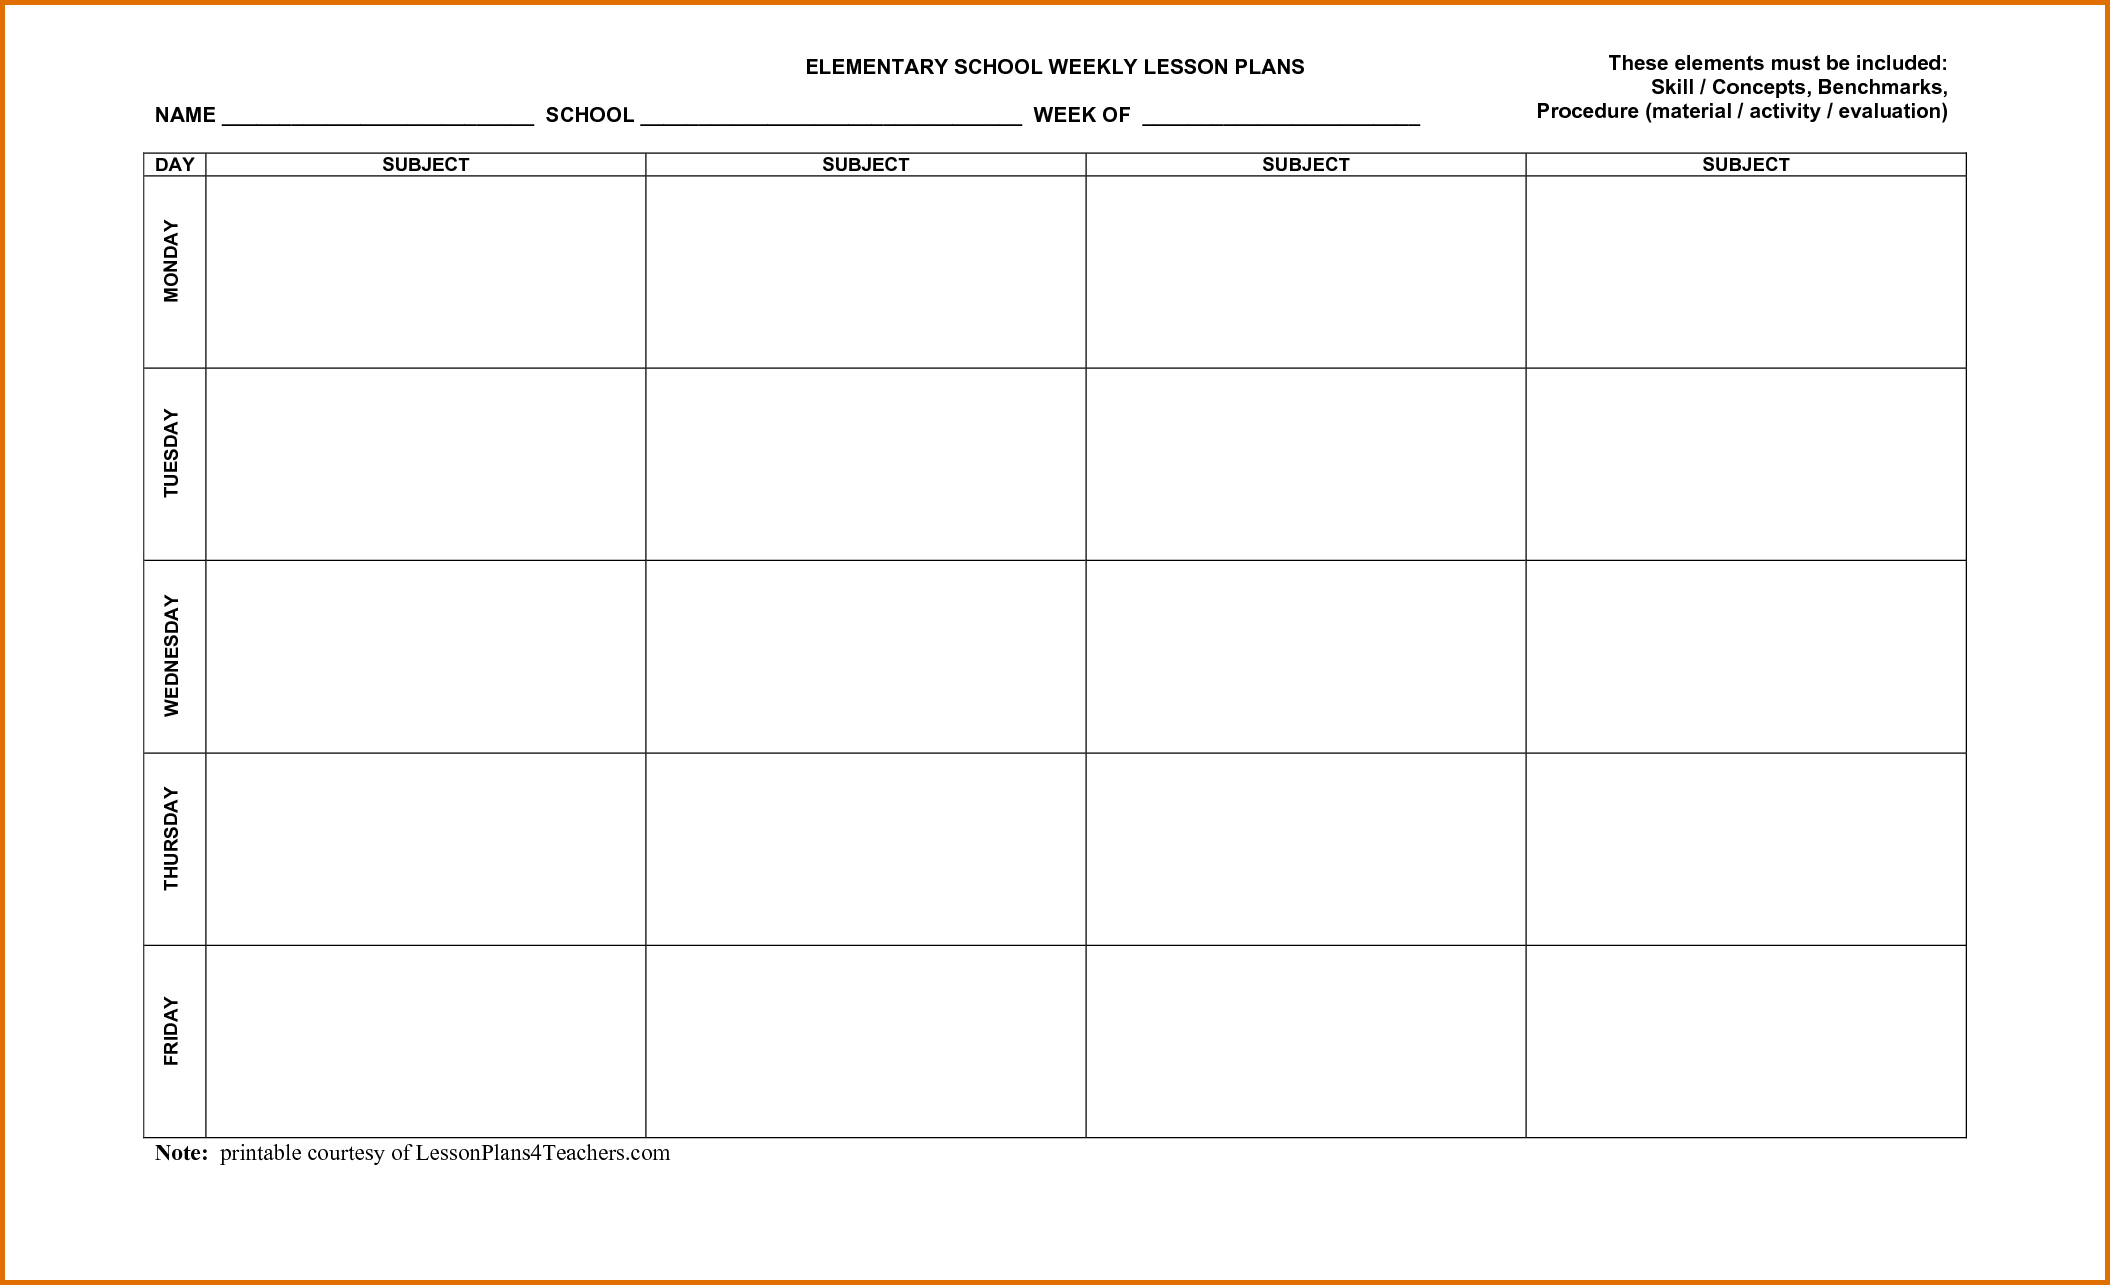 001 Weekly Lesson Plan Template Word Unit ~ Tinypetition throughout Weekly Calander Lesson Plan Template